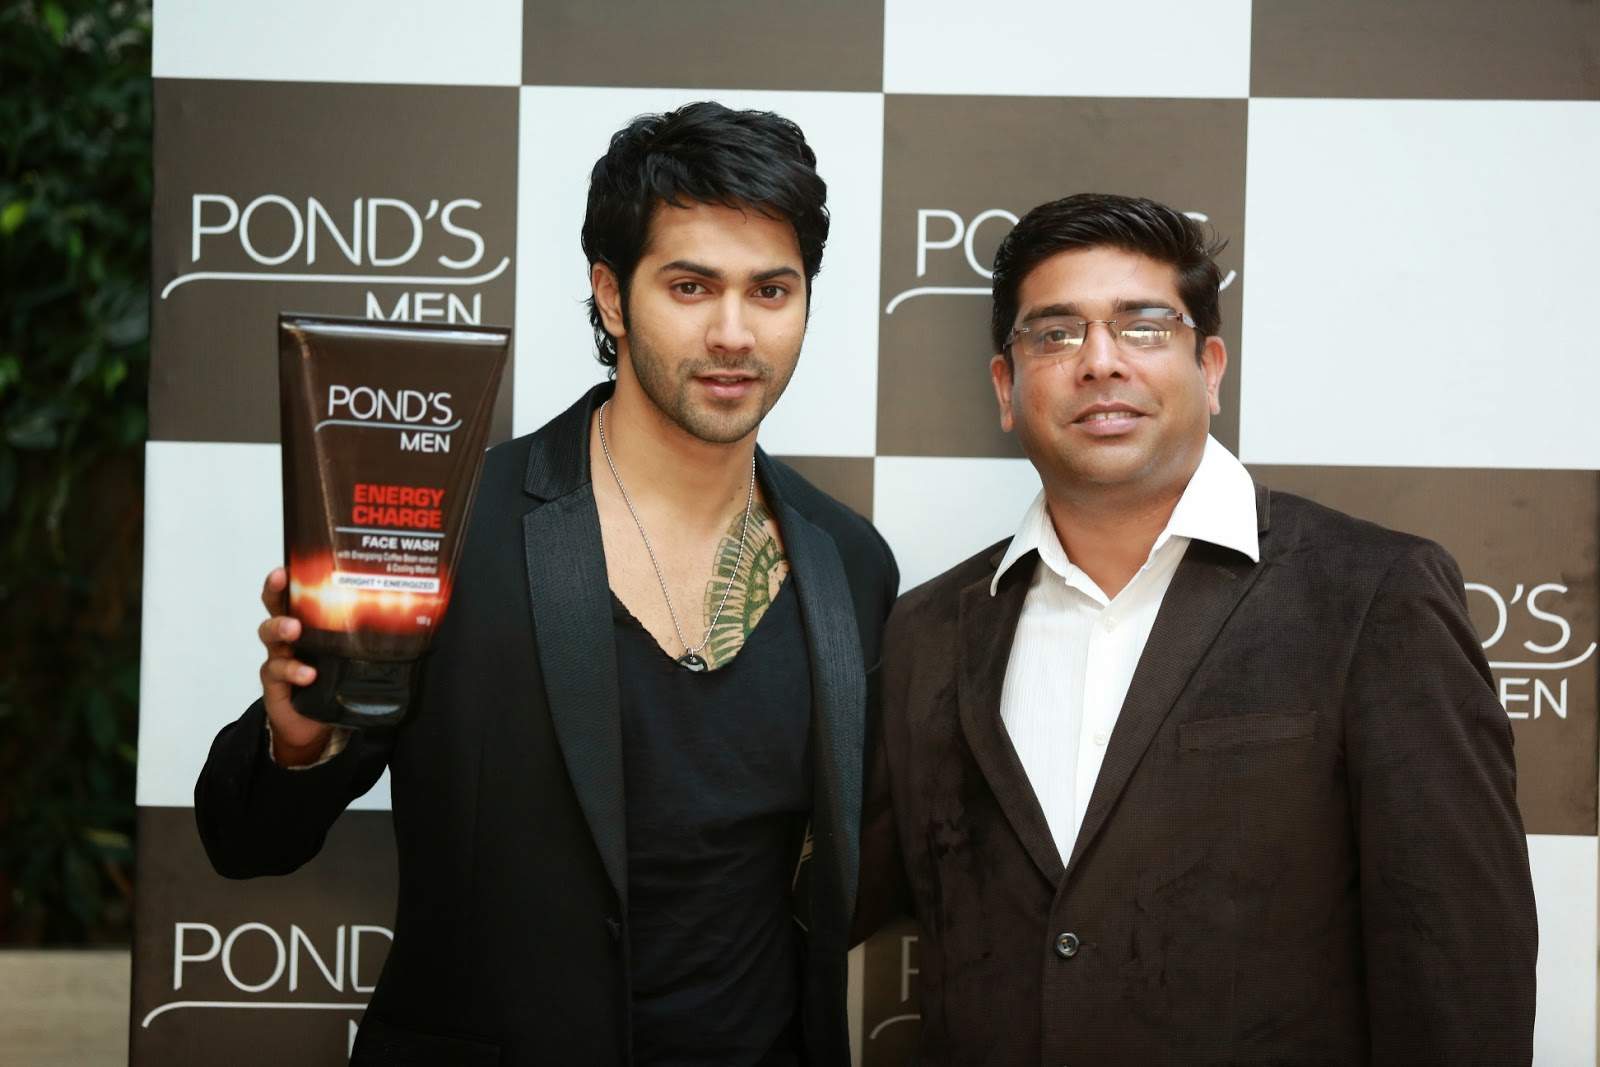 Pond's Skincare Range Specially Formulated For Men